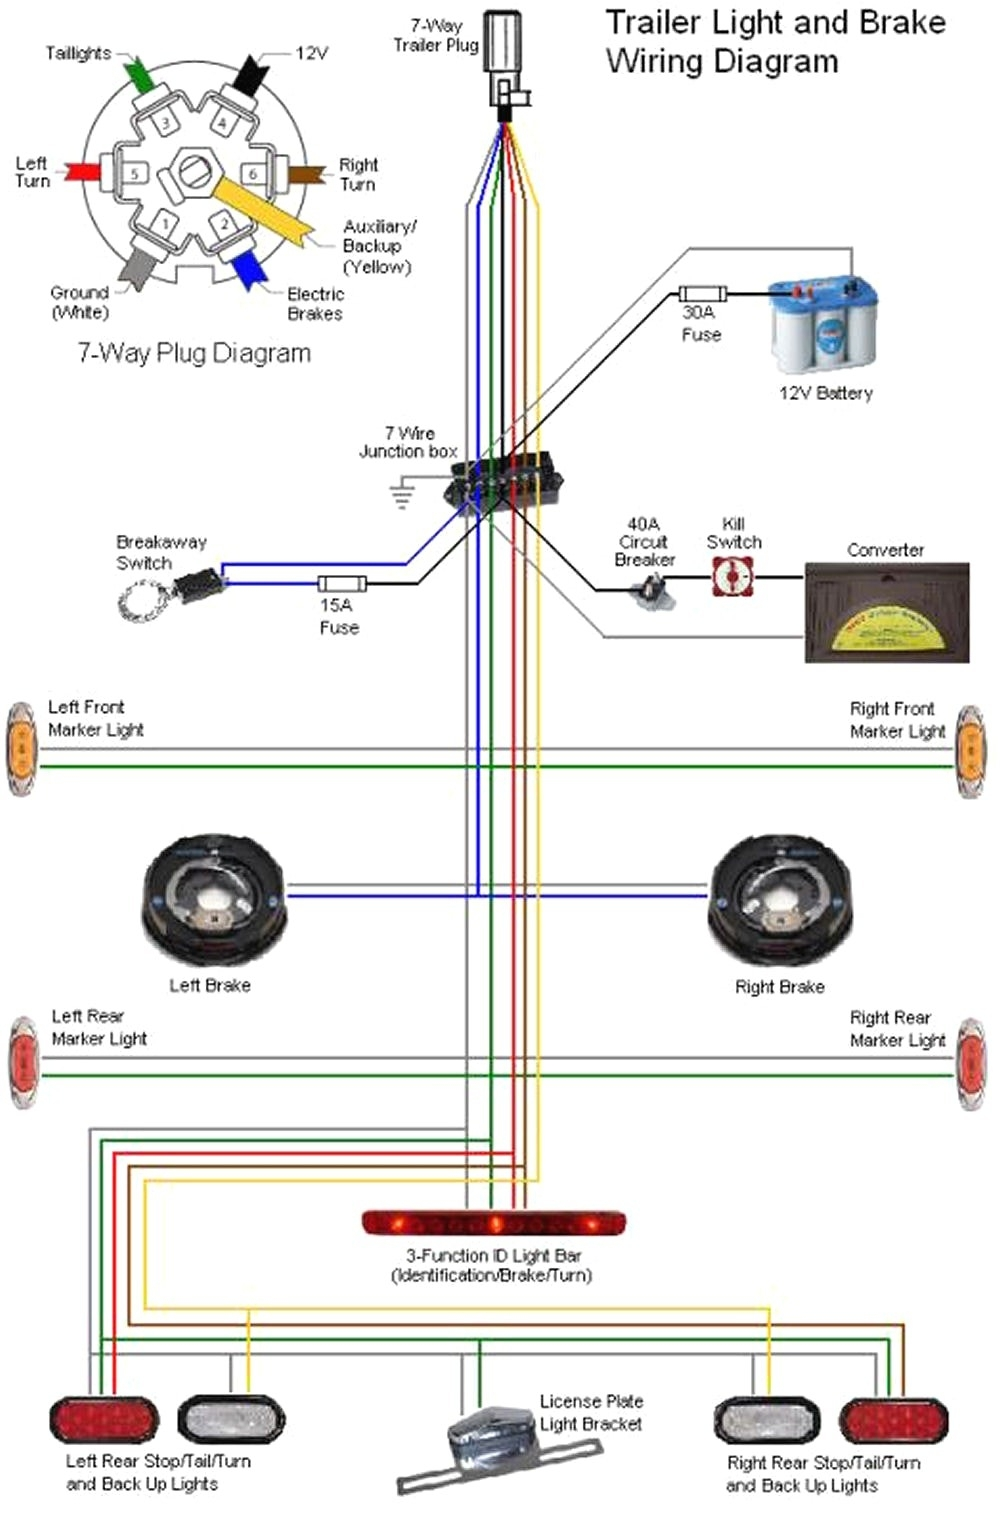 trailer breakaway kit wiring diagram wiring diagram third level